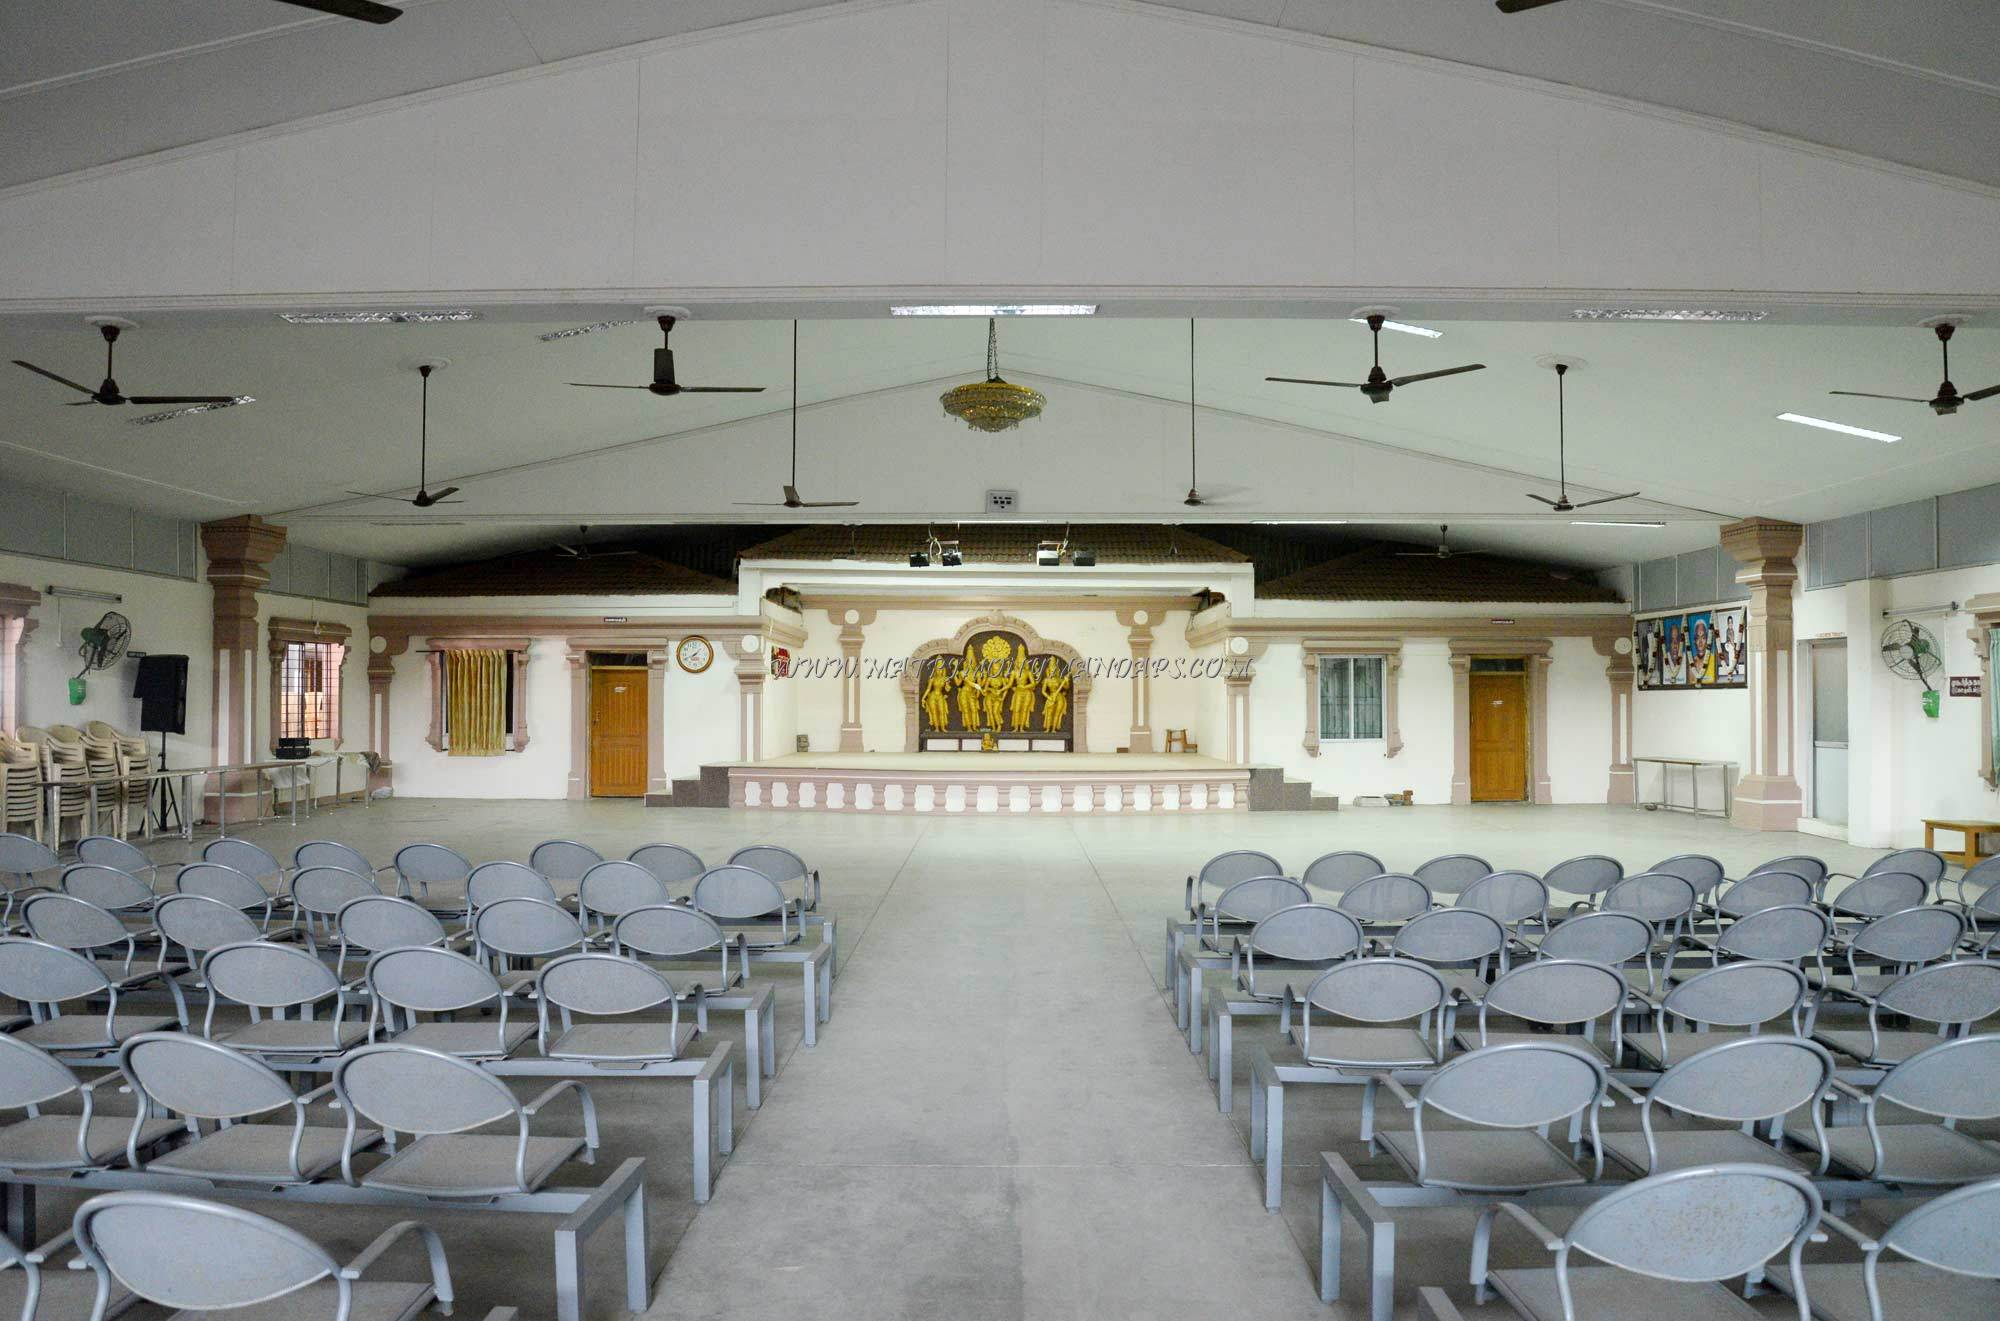 Find the availability of the RVS Kumaran Thirumana Mandapam in Sulur, Coimbatore and avail special offers